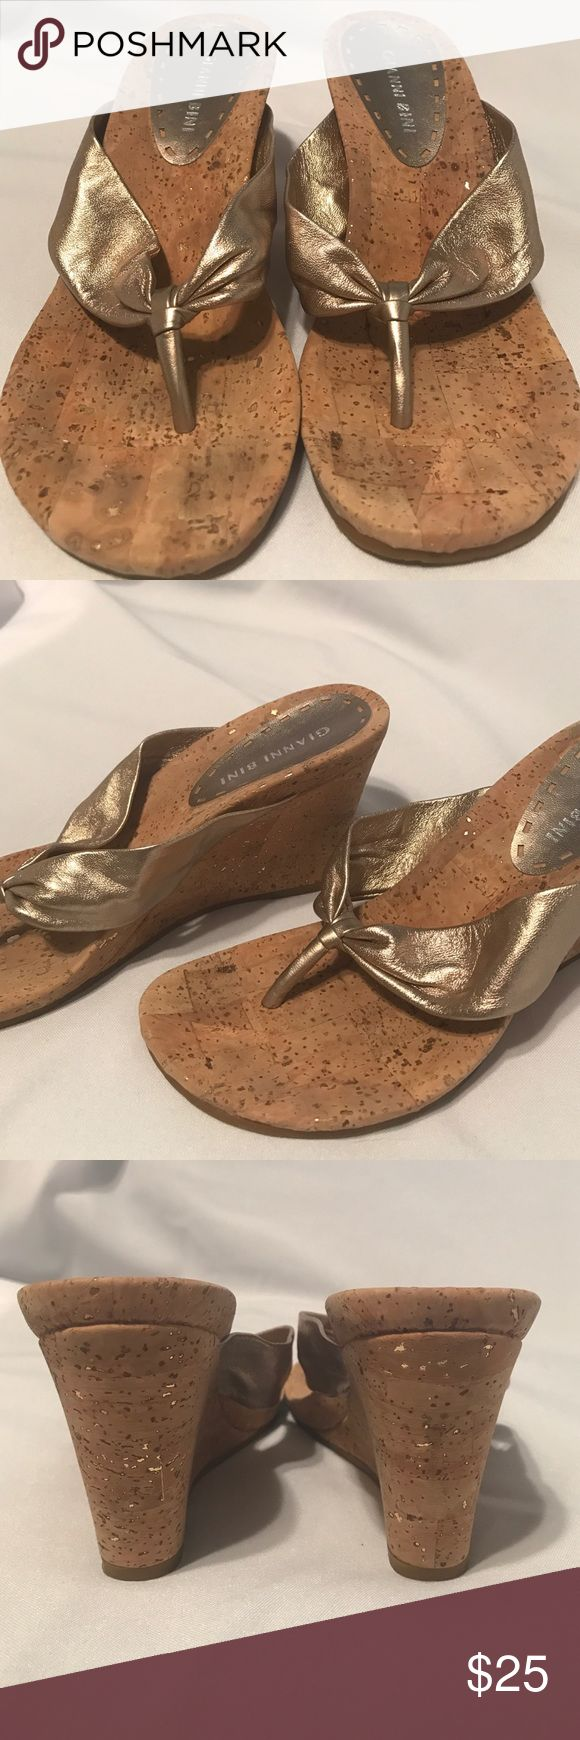 Gianni Bini gold cork wedges Gold sandals with cork wedge heel. Gianni Bini Shoes Wedges